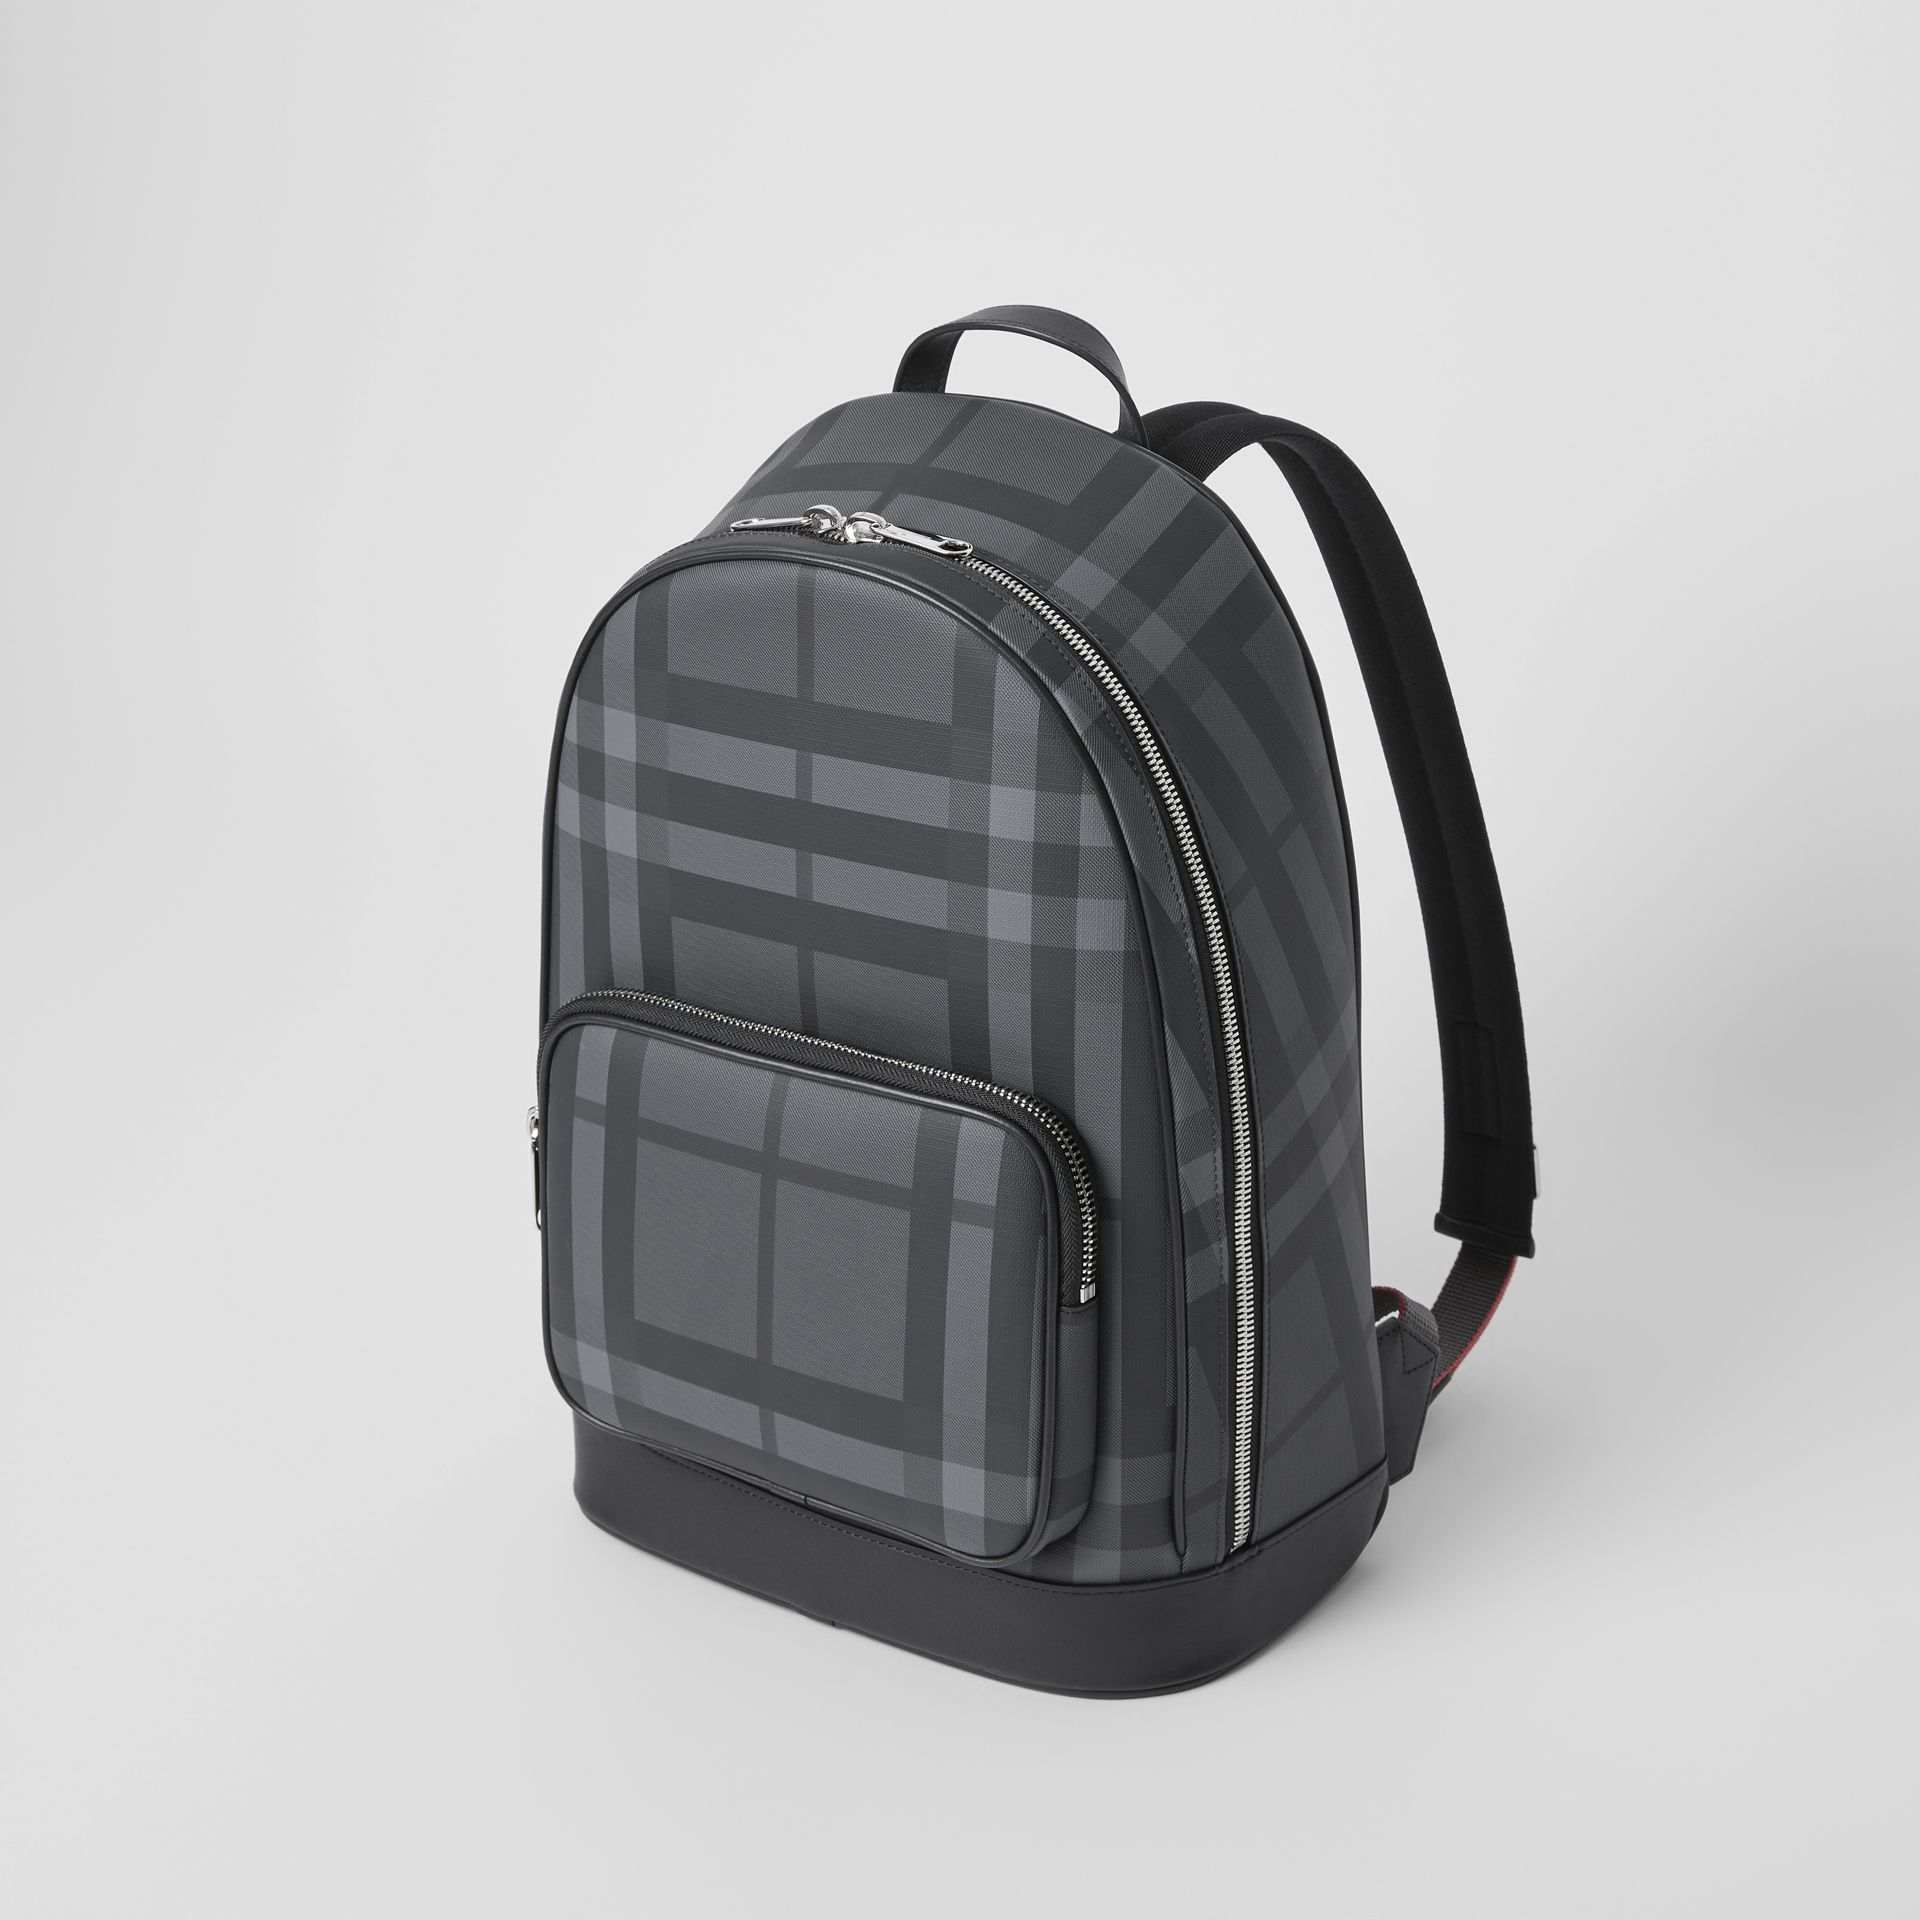 London Check and Leather Backpack in Charcoal/black - Men | Burberry - gallery image 4